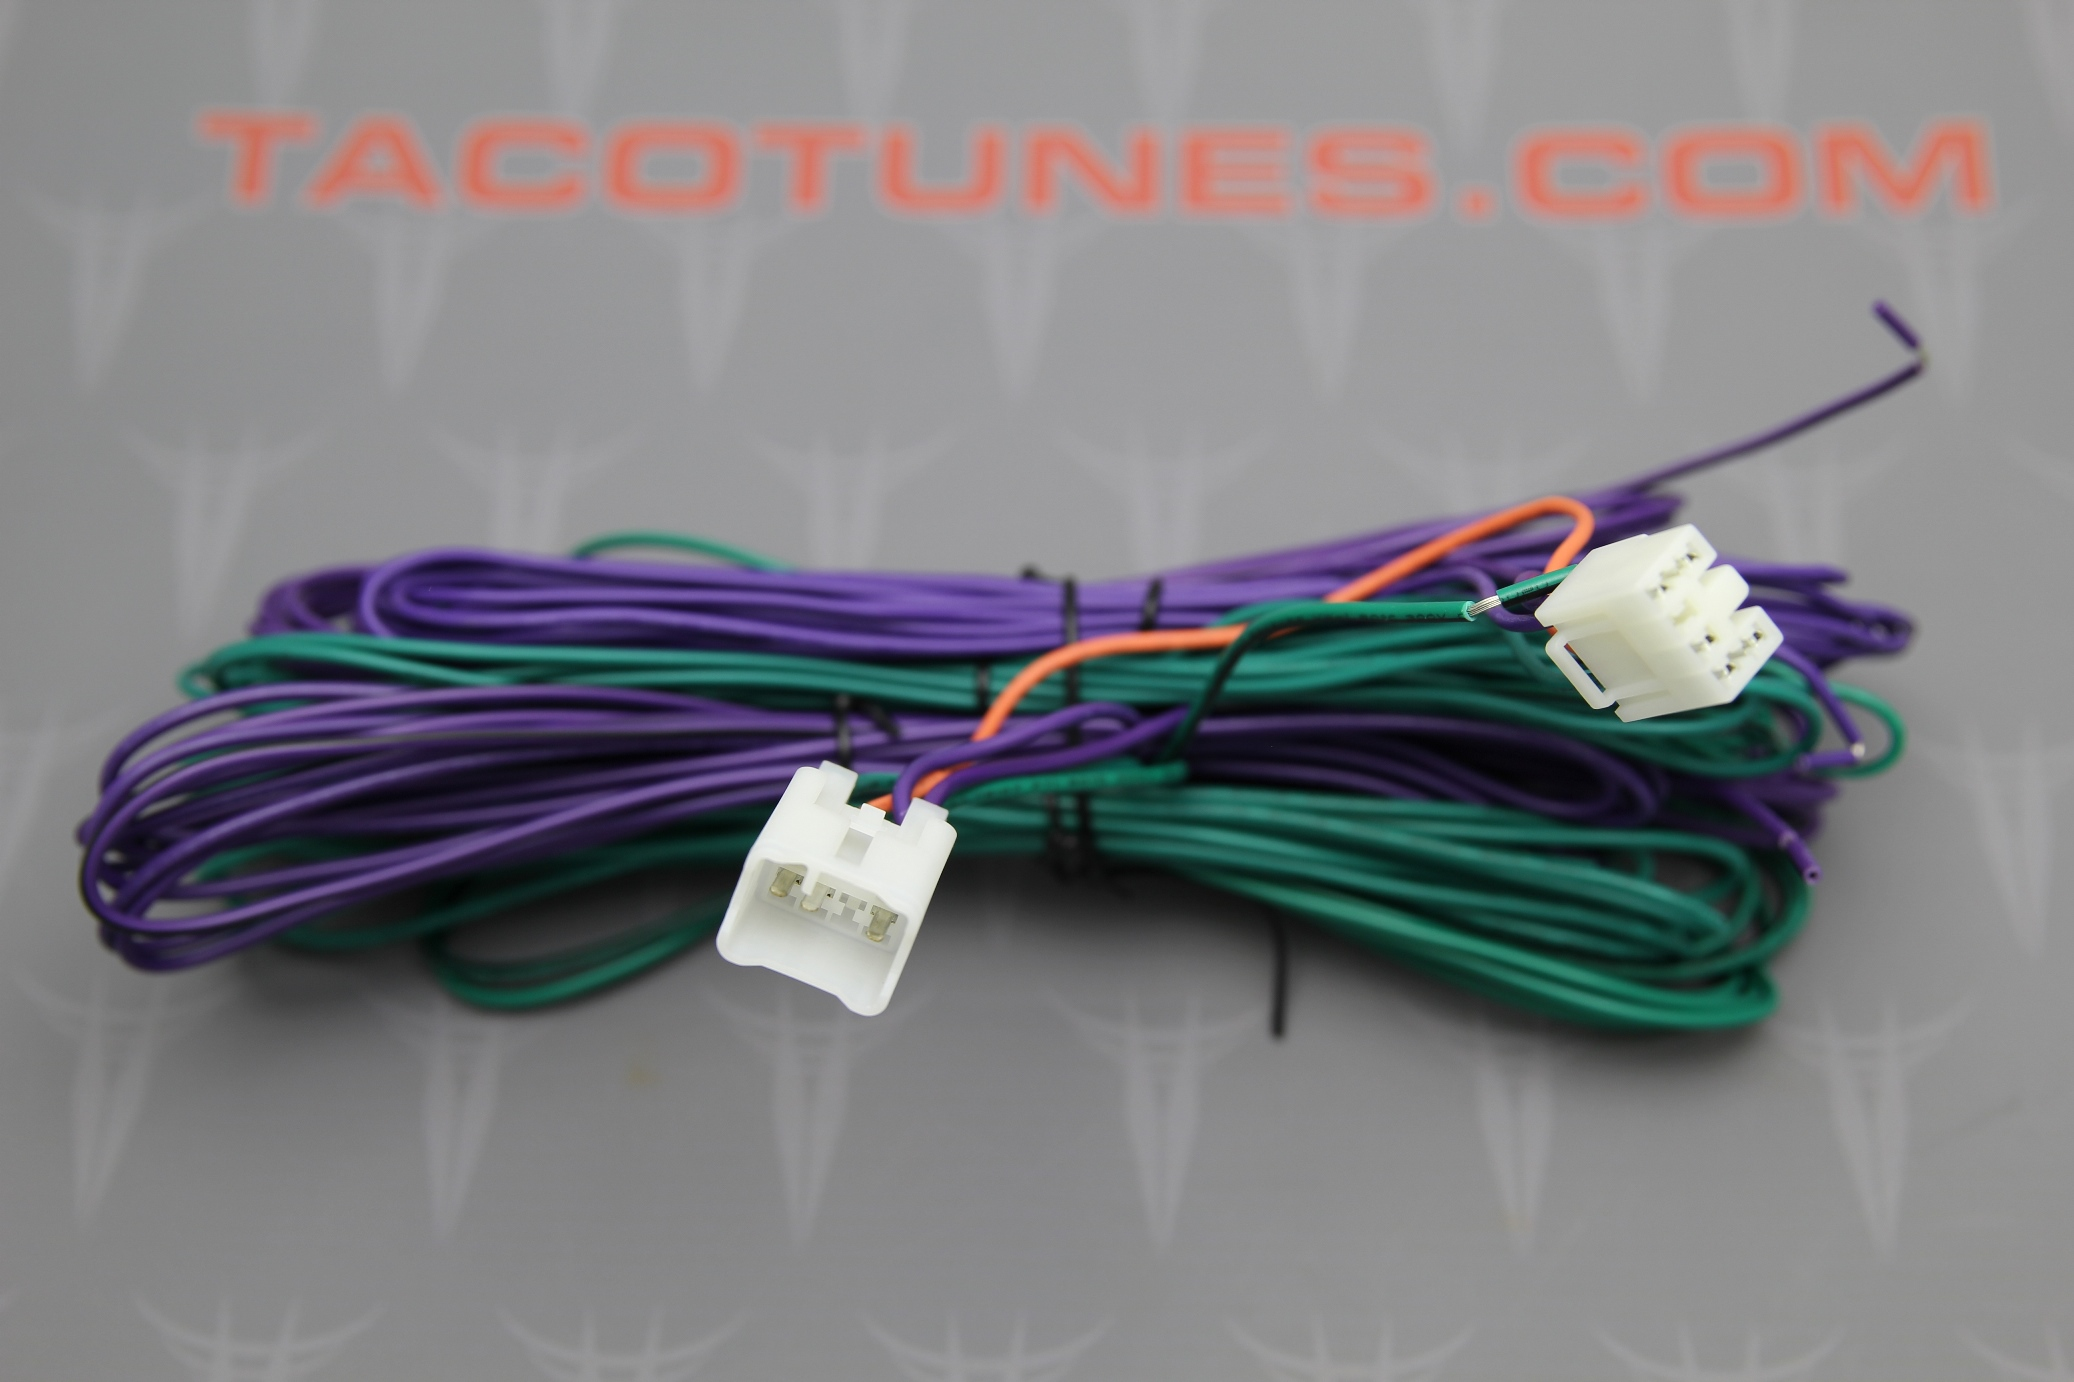 Toyota-FJ-Cruiser-Add-a-subwoofer-plug-and-play-harness Radio Wiring Diagram For Toyota Camry on